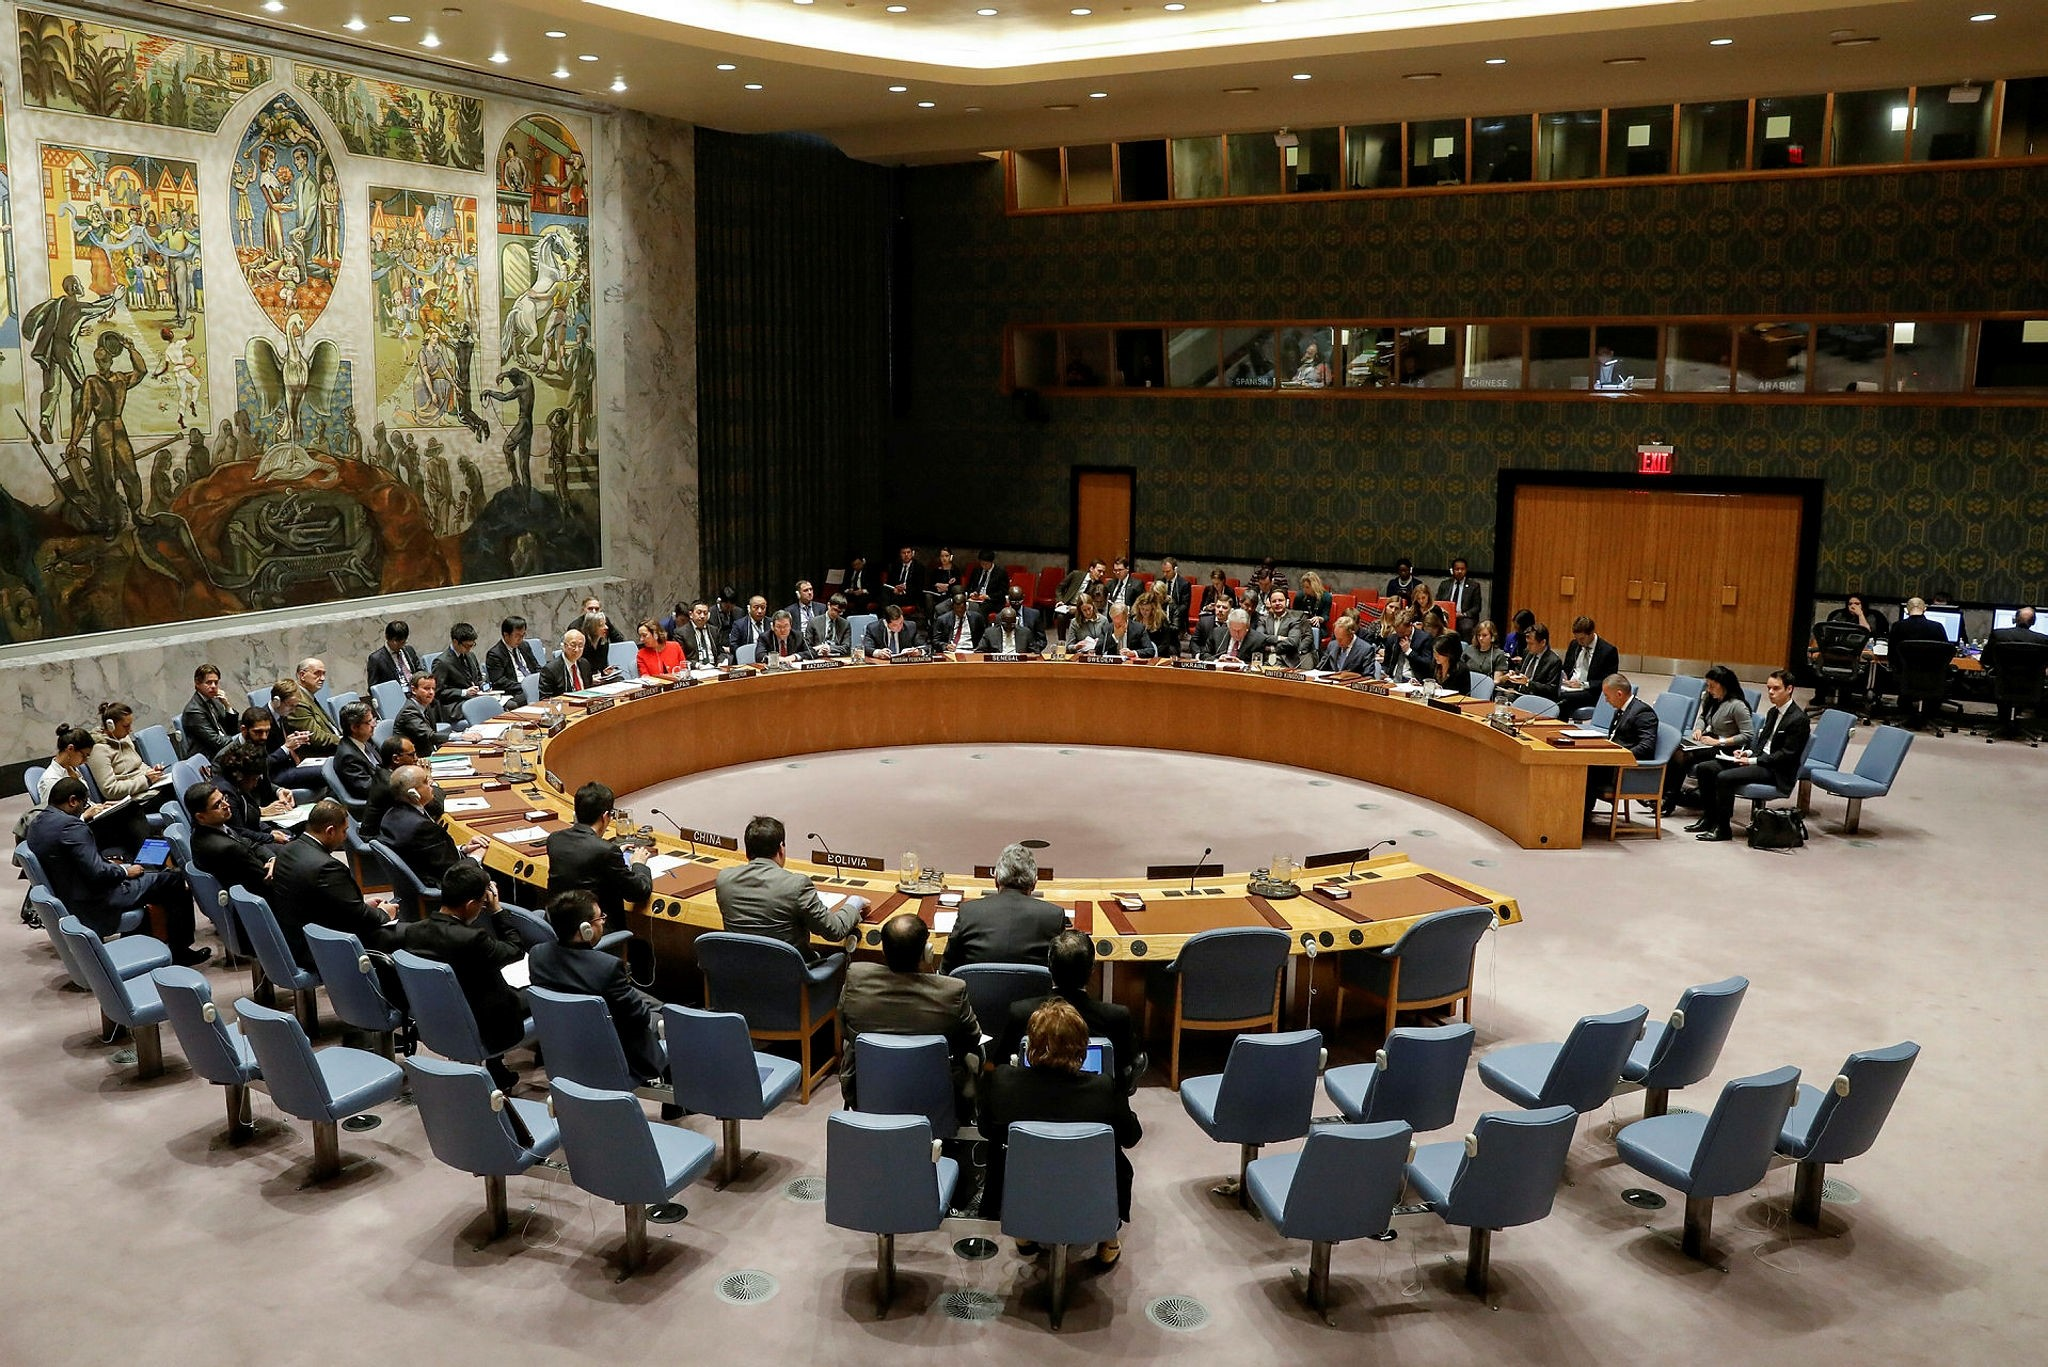 The United Nations Security Council meets on the situation in the Middle East, including Palestine, at U.N. Headquarters in New York City, New York, U.S., December 18, 2017. (Reuters Photo)